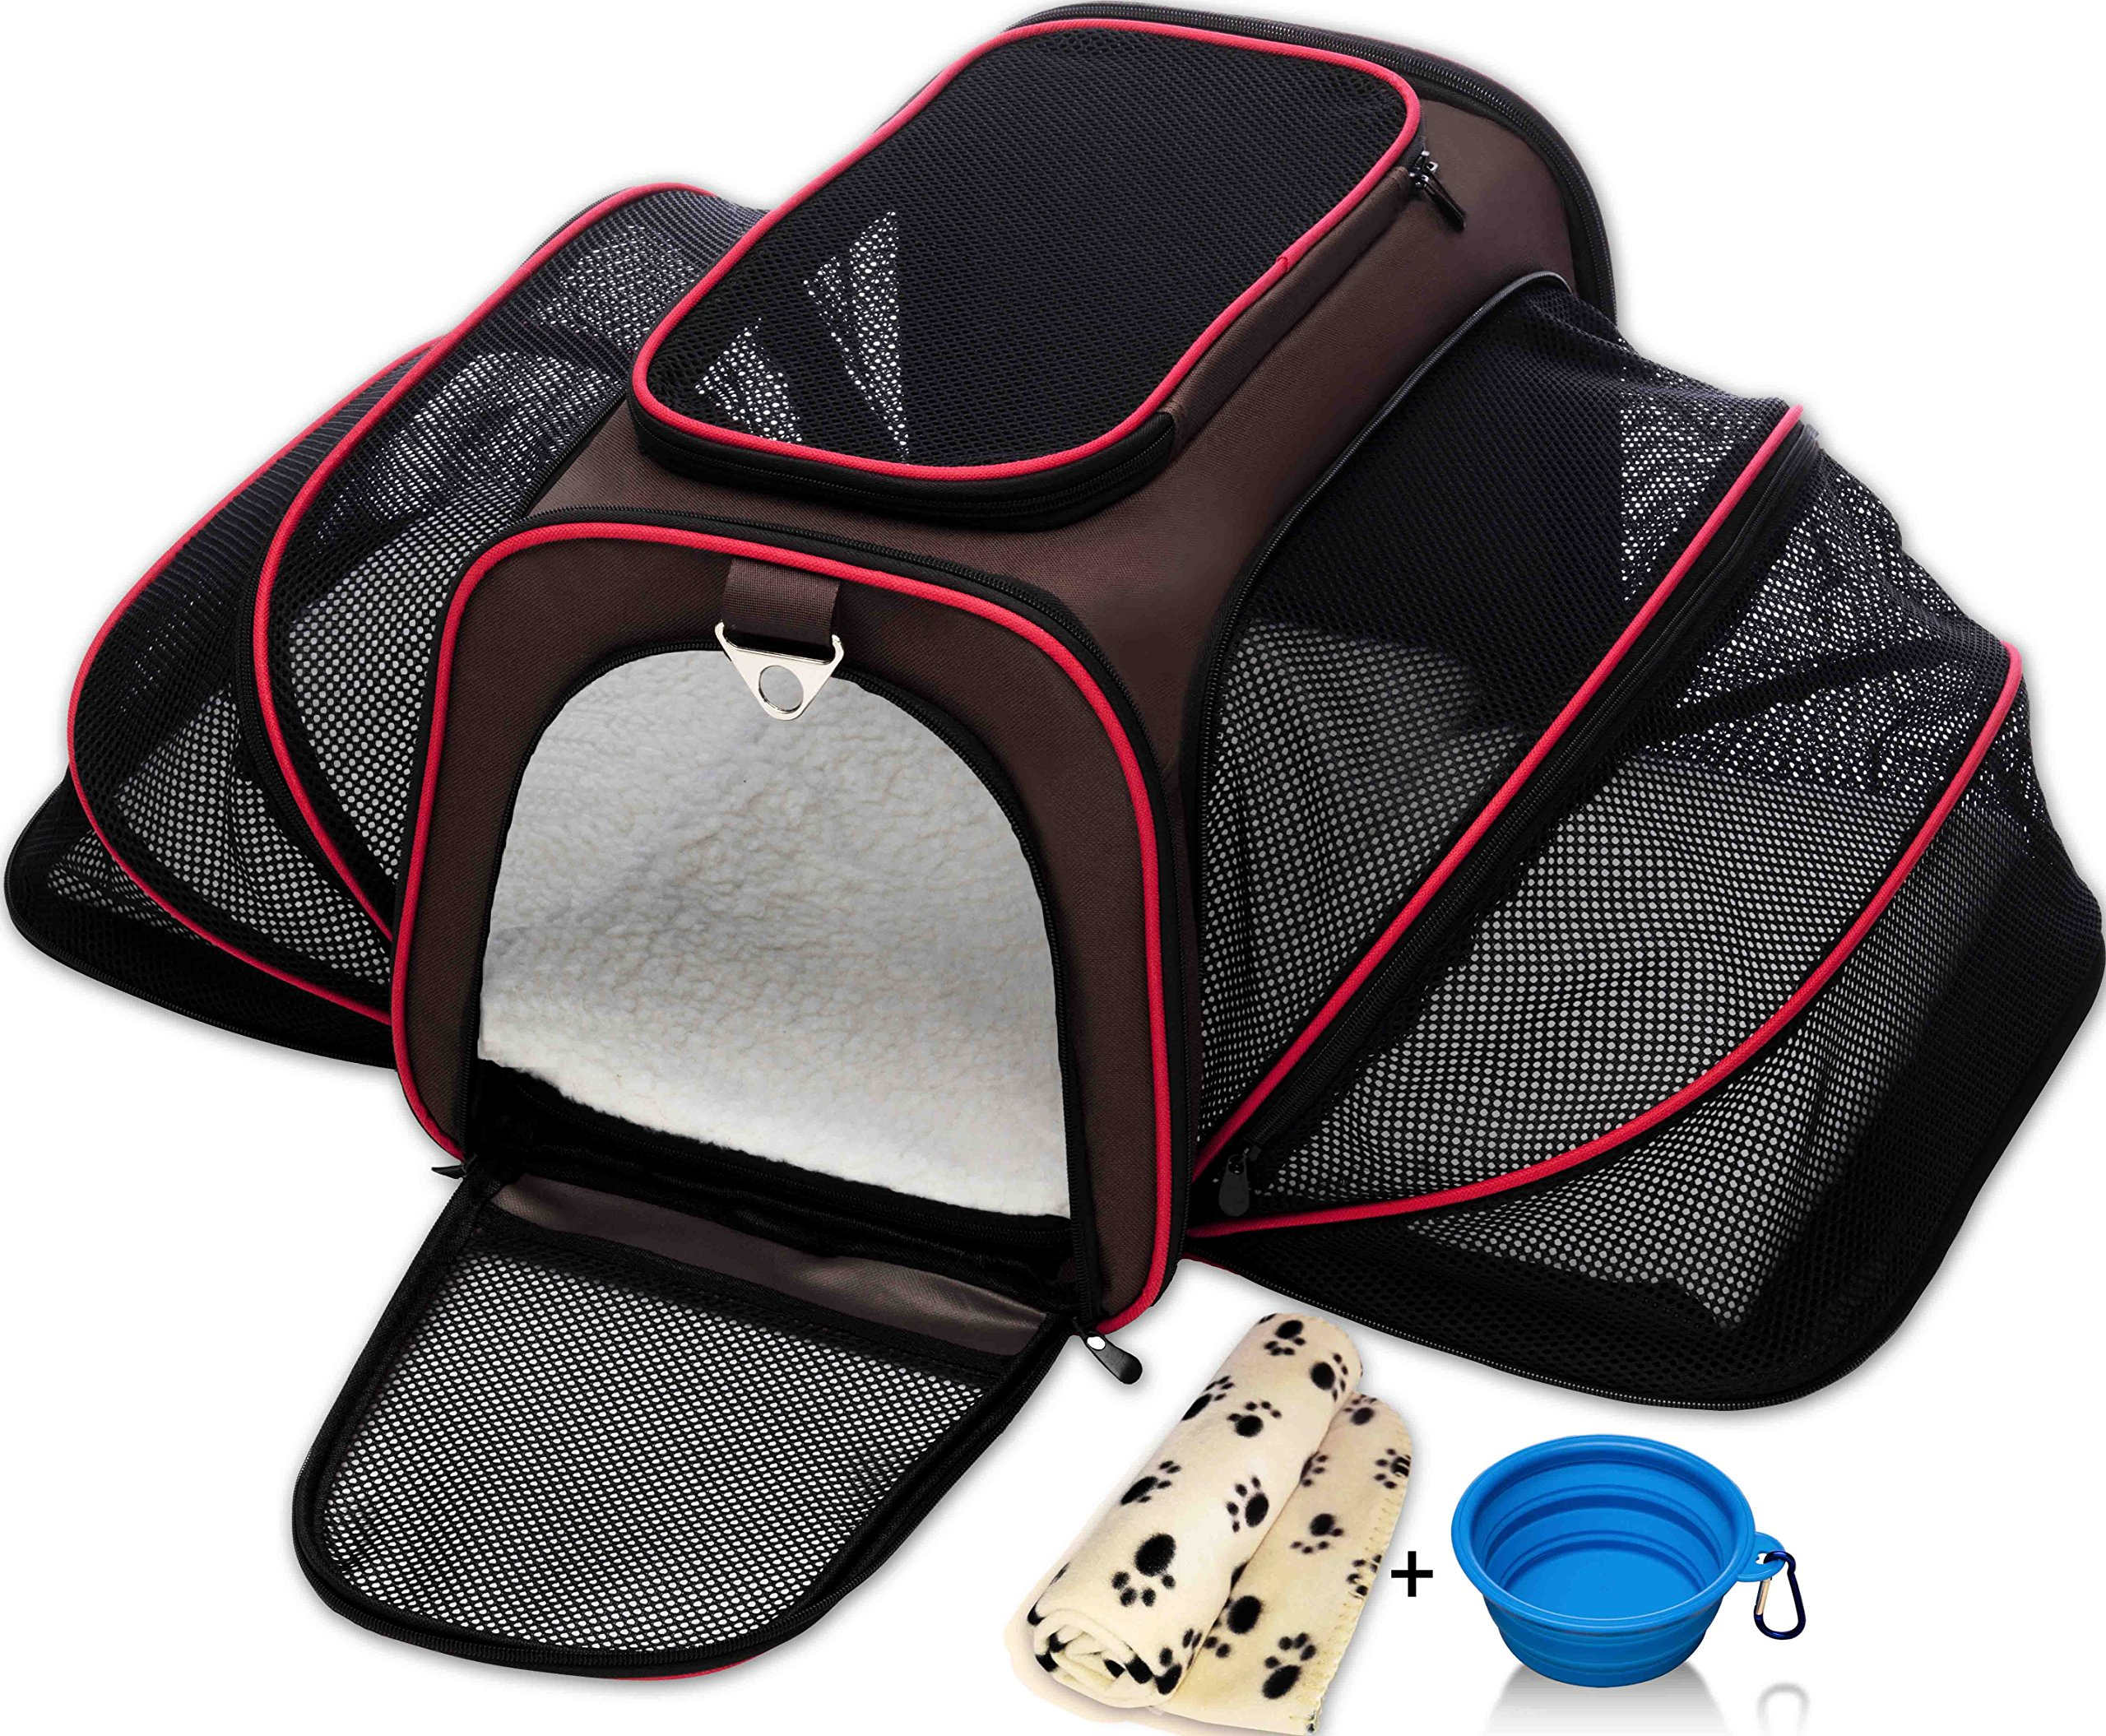 Petyella Cat Carrier Pet Carrier for Small Dogs and Cats - Expandable Soft Sided Crate for Pet - Airline Approved Medium Kennel Travel Bag - 2.8 lbs Dog Carriers with Bonus Blanket & Bowl